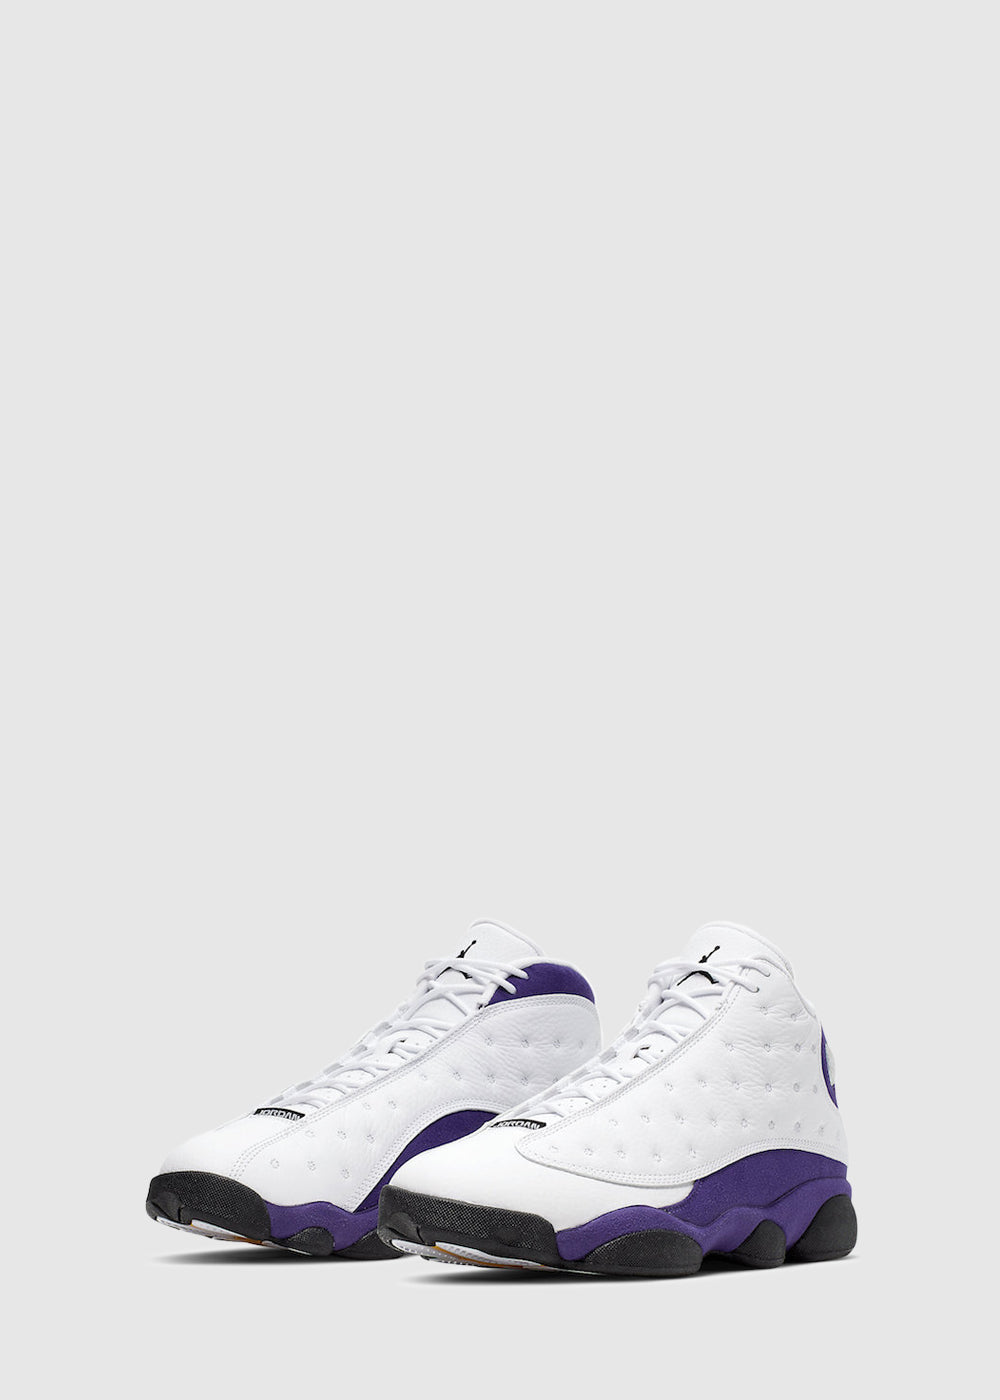 jordan-gs-aj-13-lakers-white-purple-2